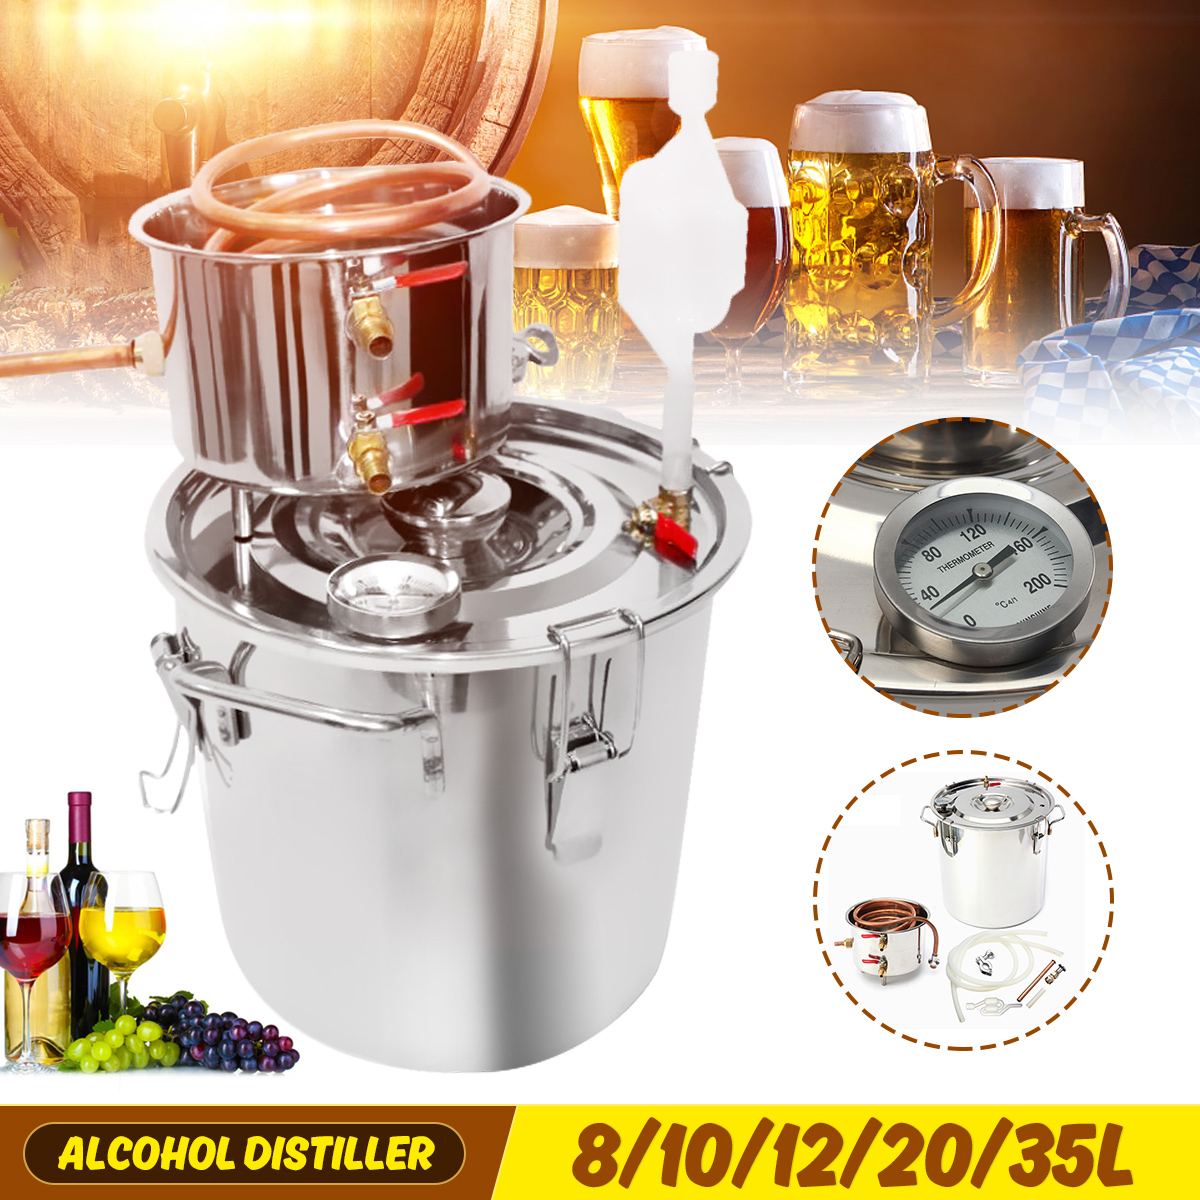 8/10/12/20/35L Distiller Moonshine Alcohol Stainless Copper DIY Home Water Wine Essential Oil Brewing Kit